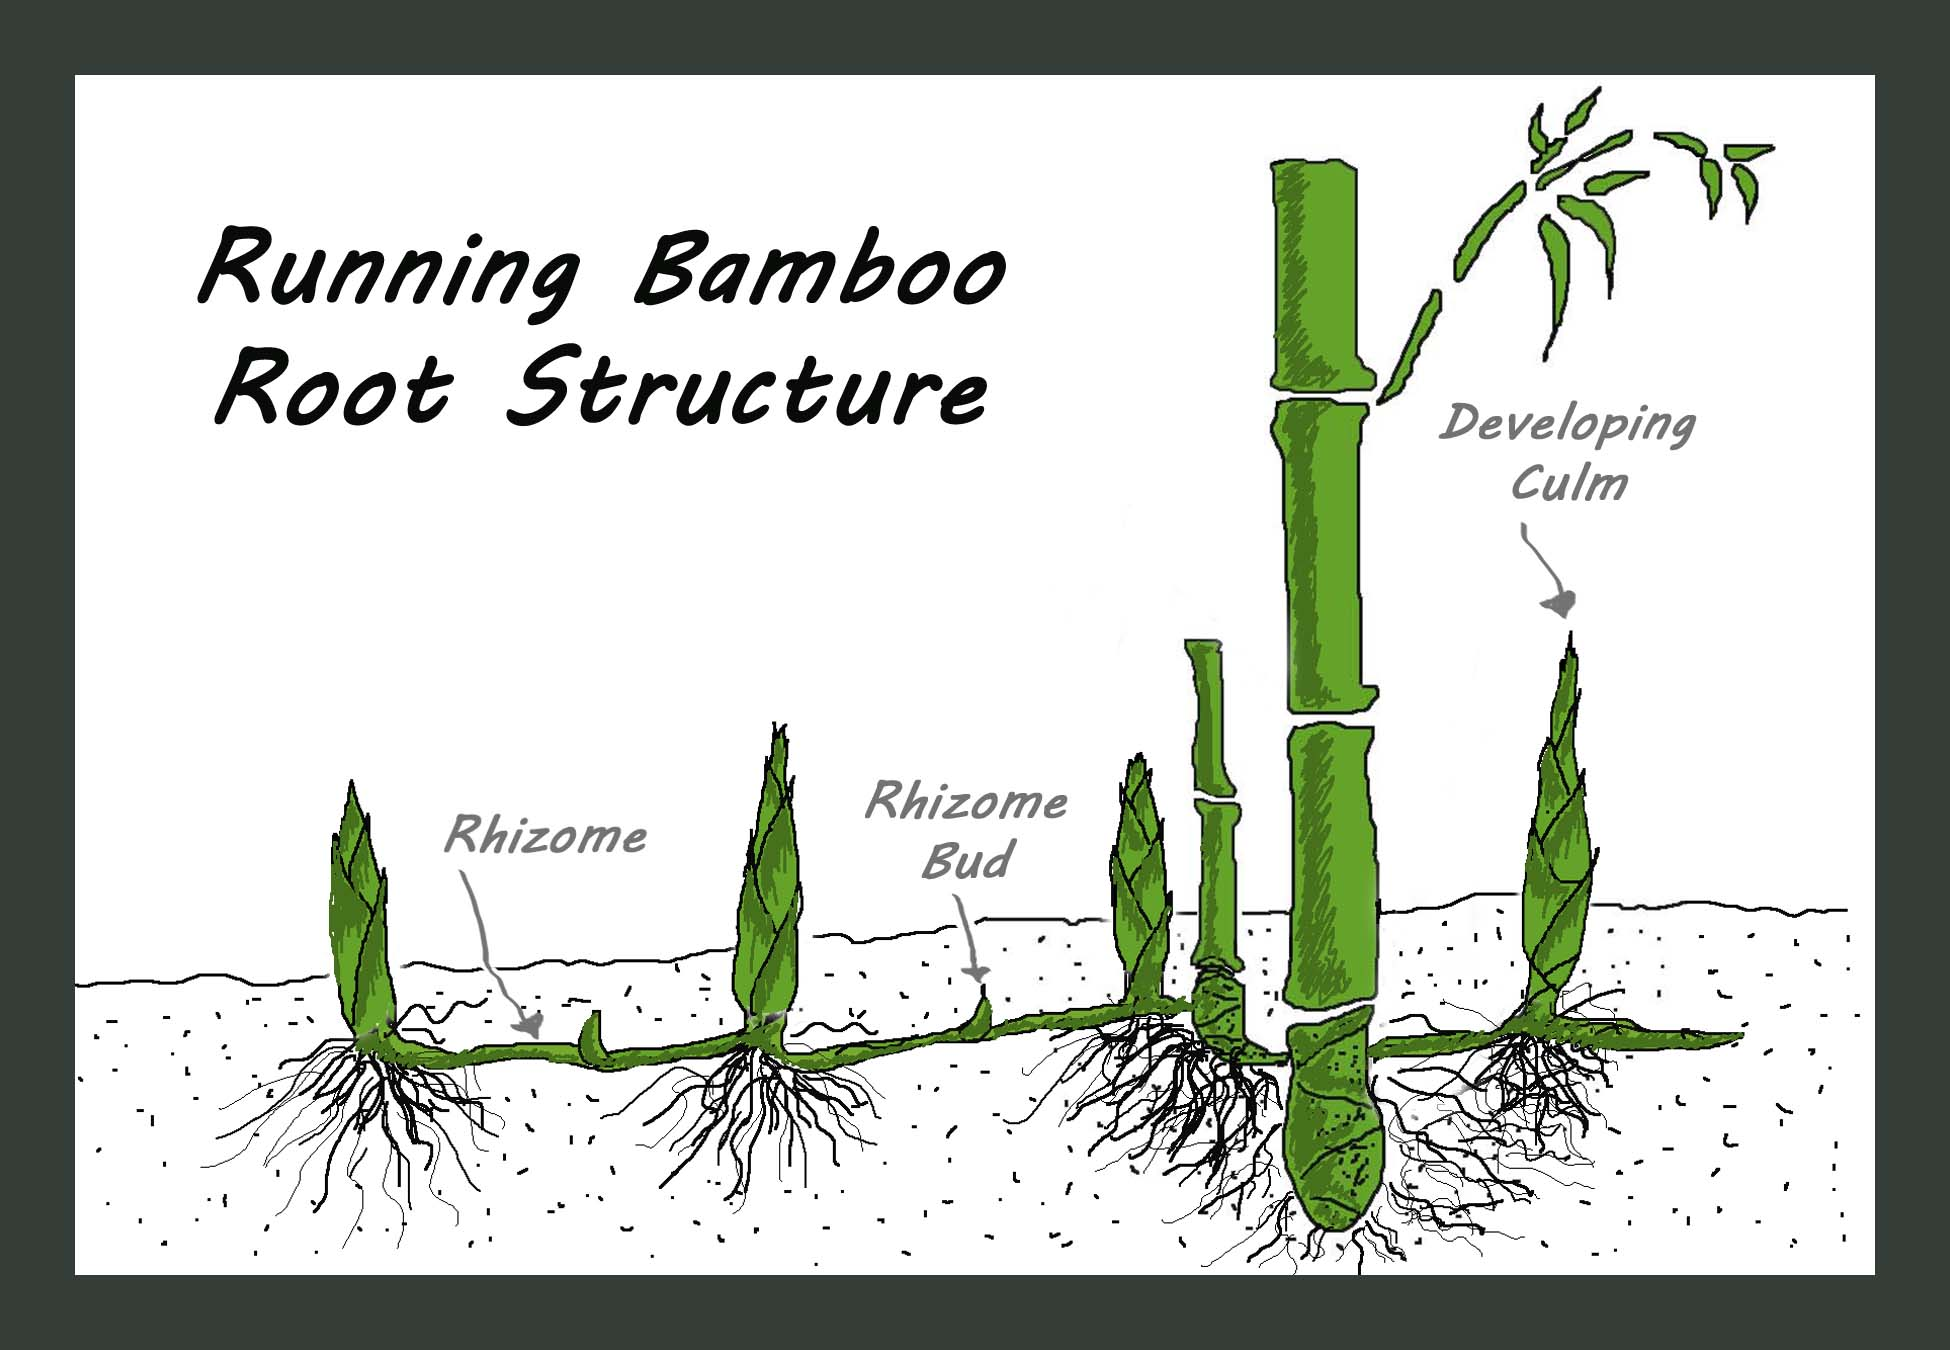 Bamboo root reduces soil erosion